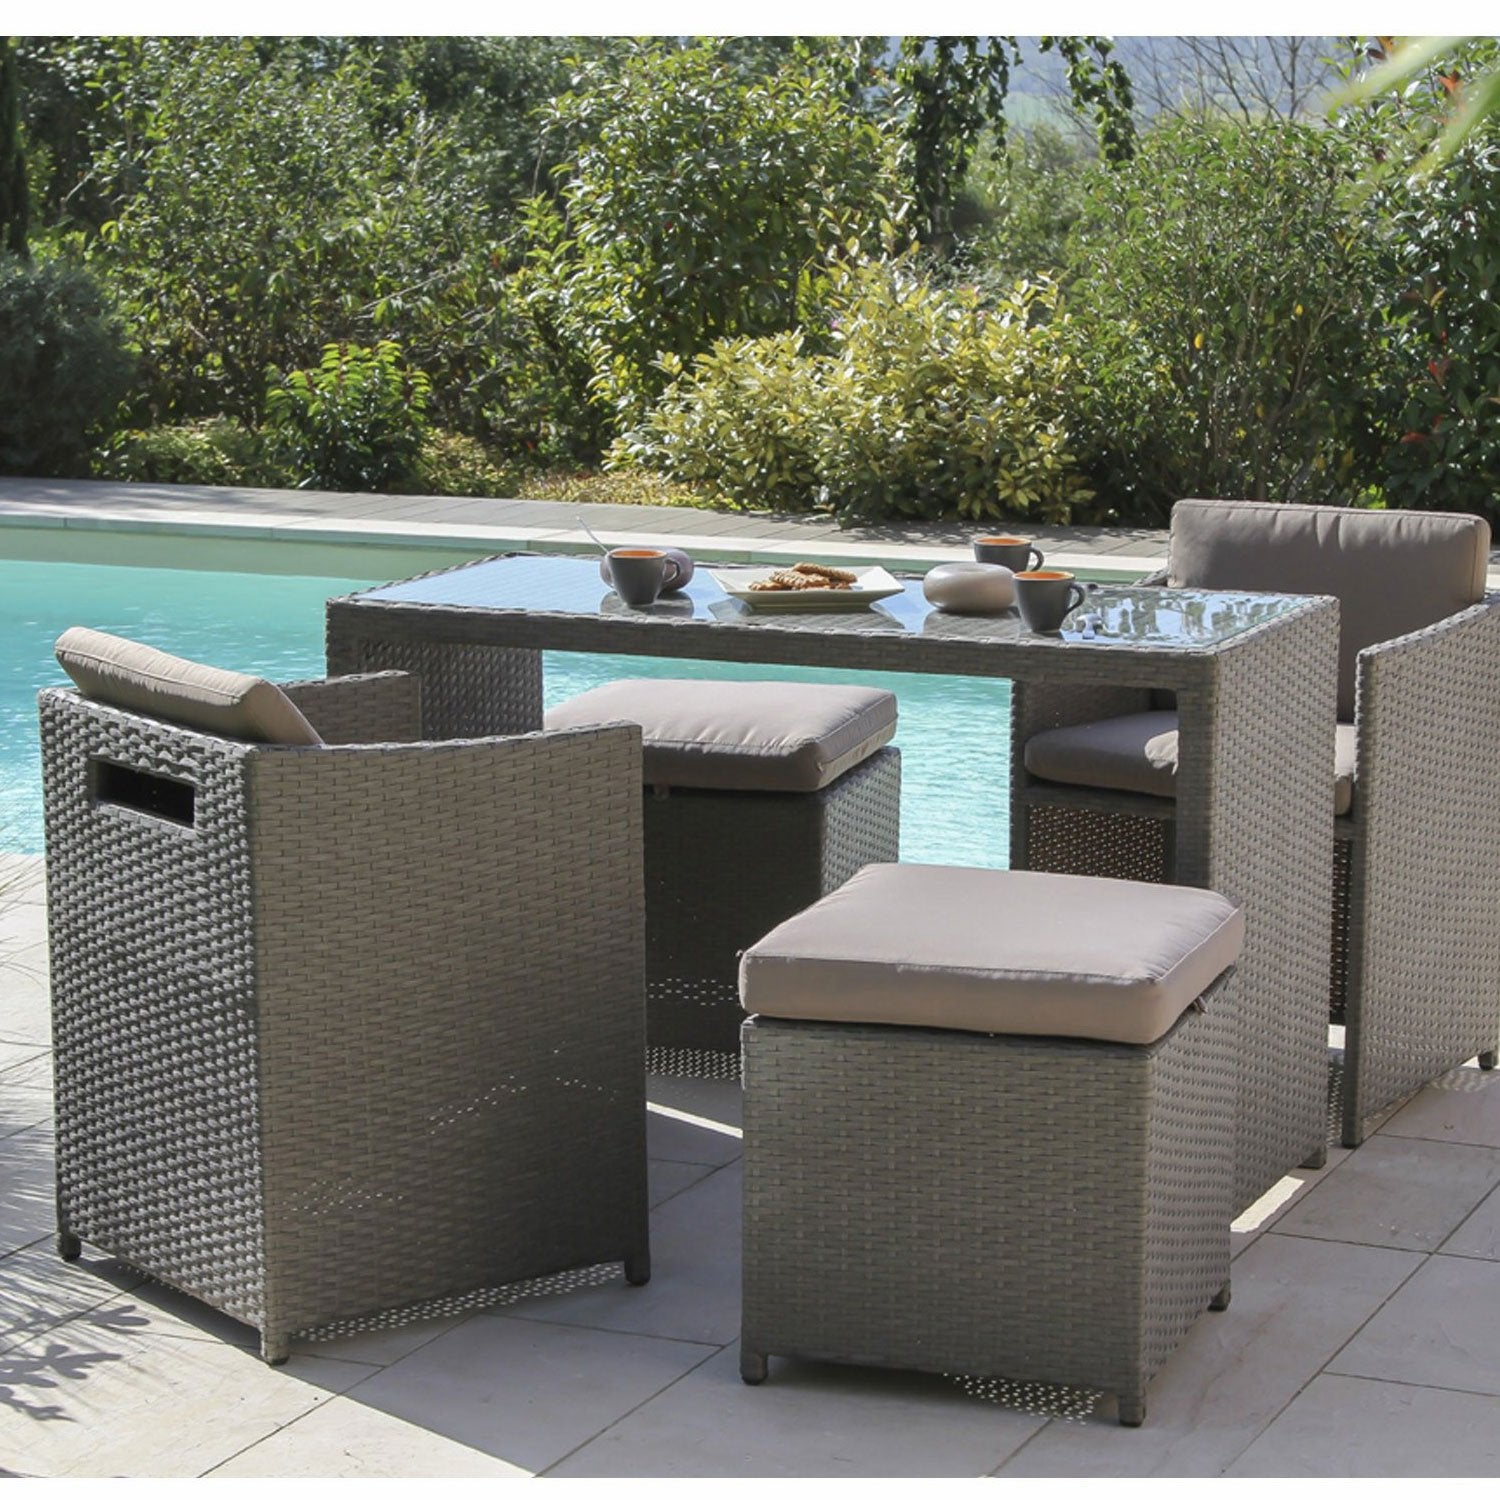 Salon de jardin foggia r sine tress e gris 1 table 2 for Mobilier exterieur resine tressee